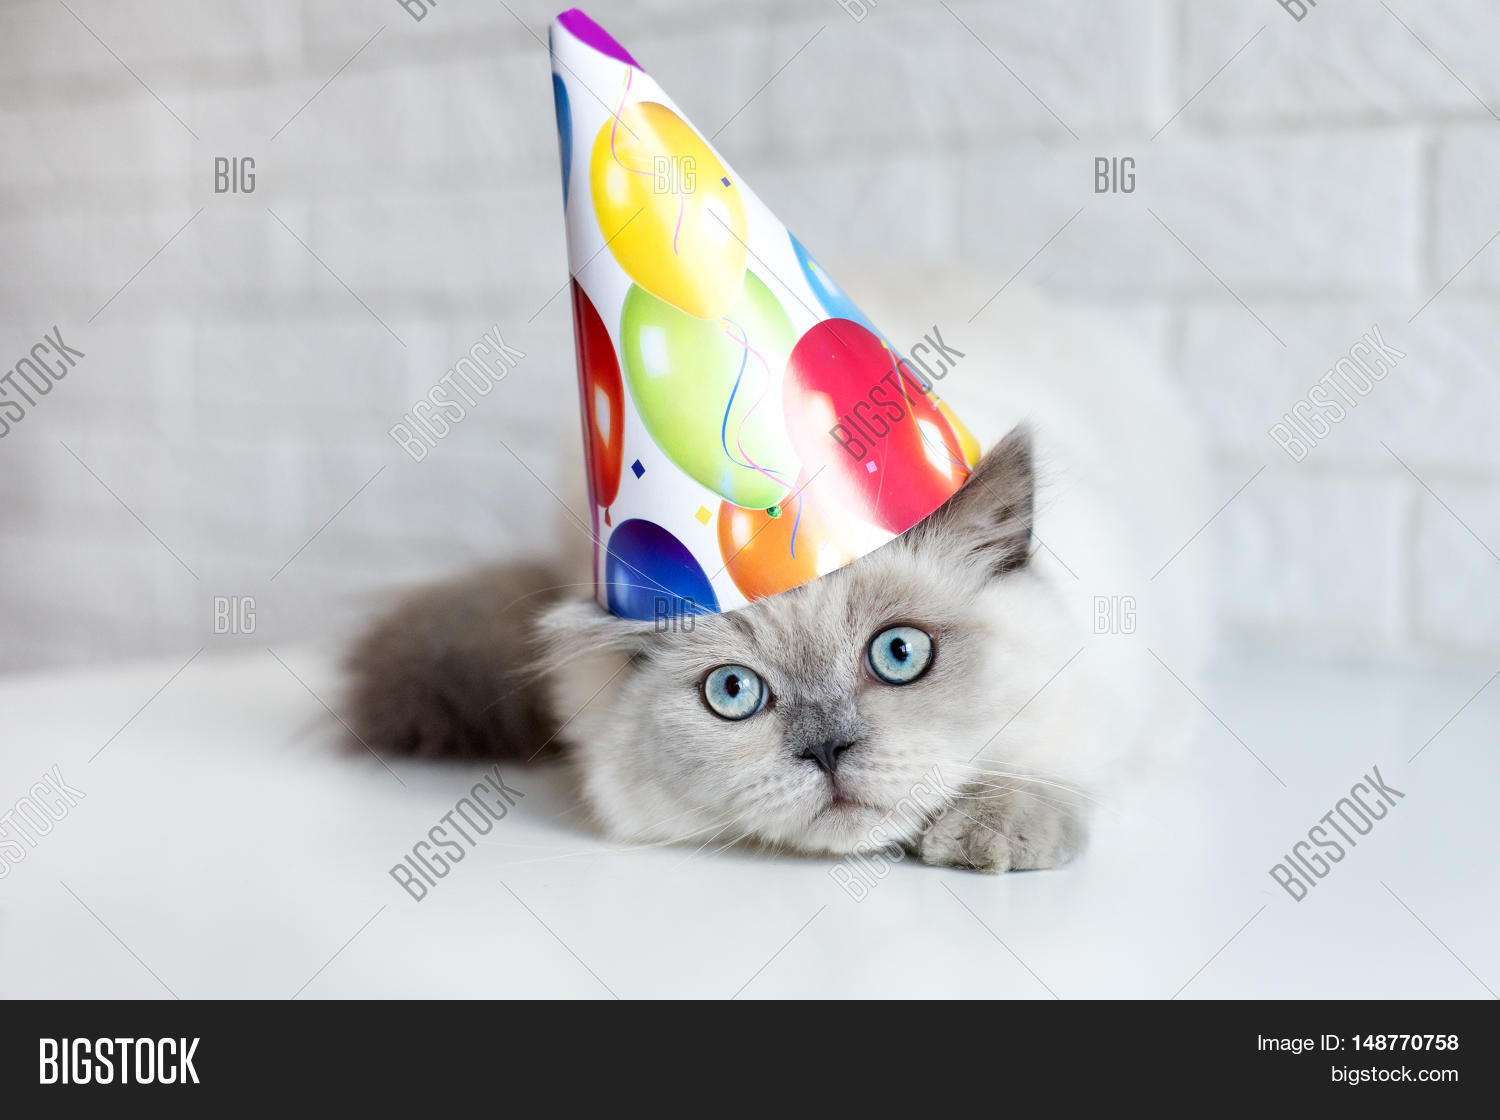 Funny Cat In A Birthday Hat Posing Indoors